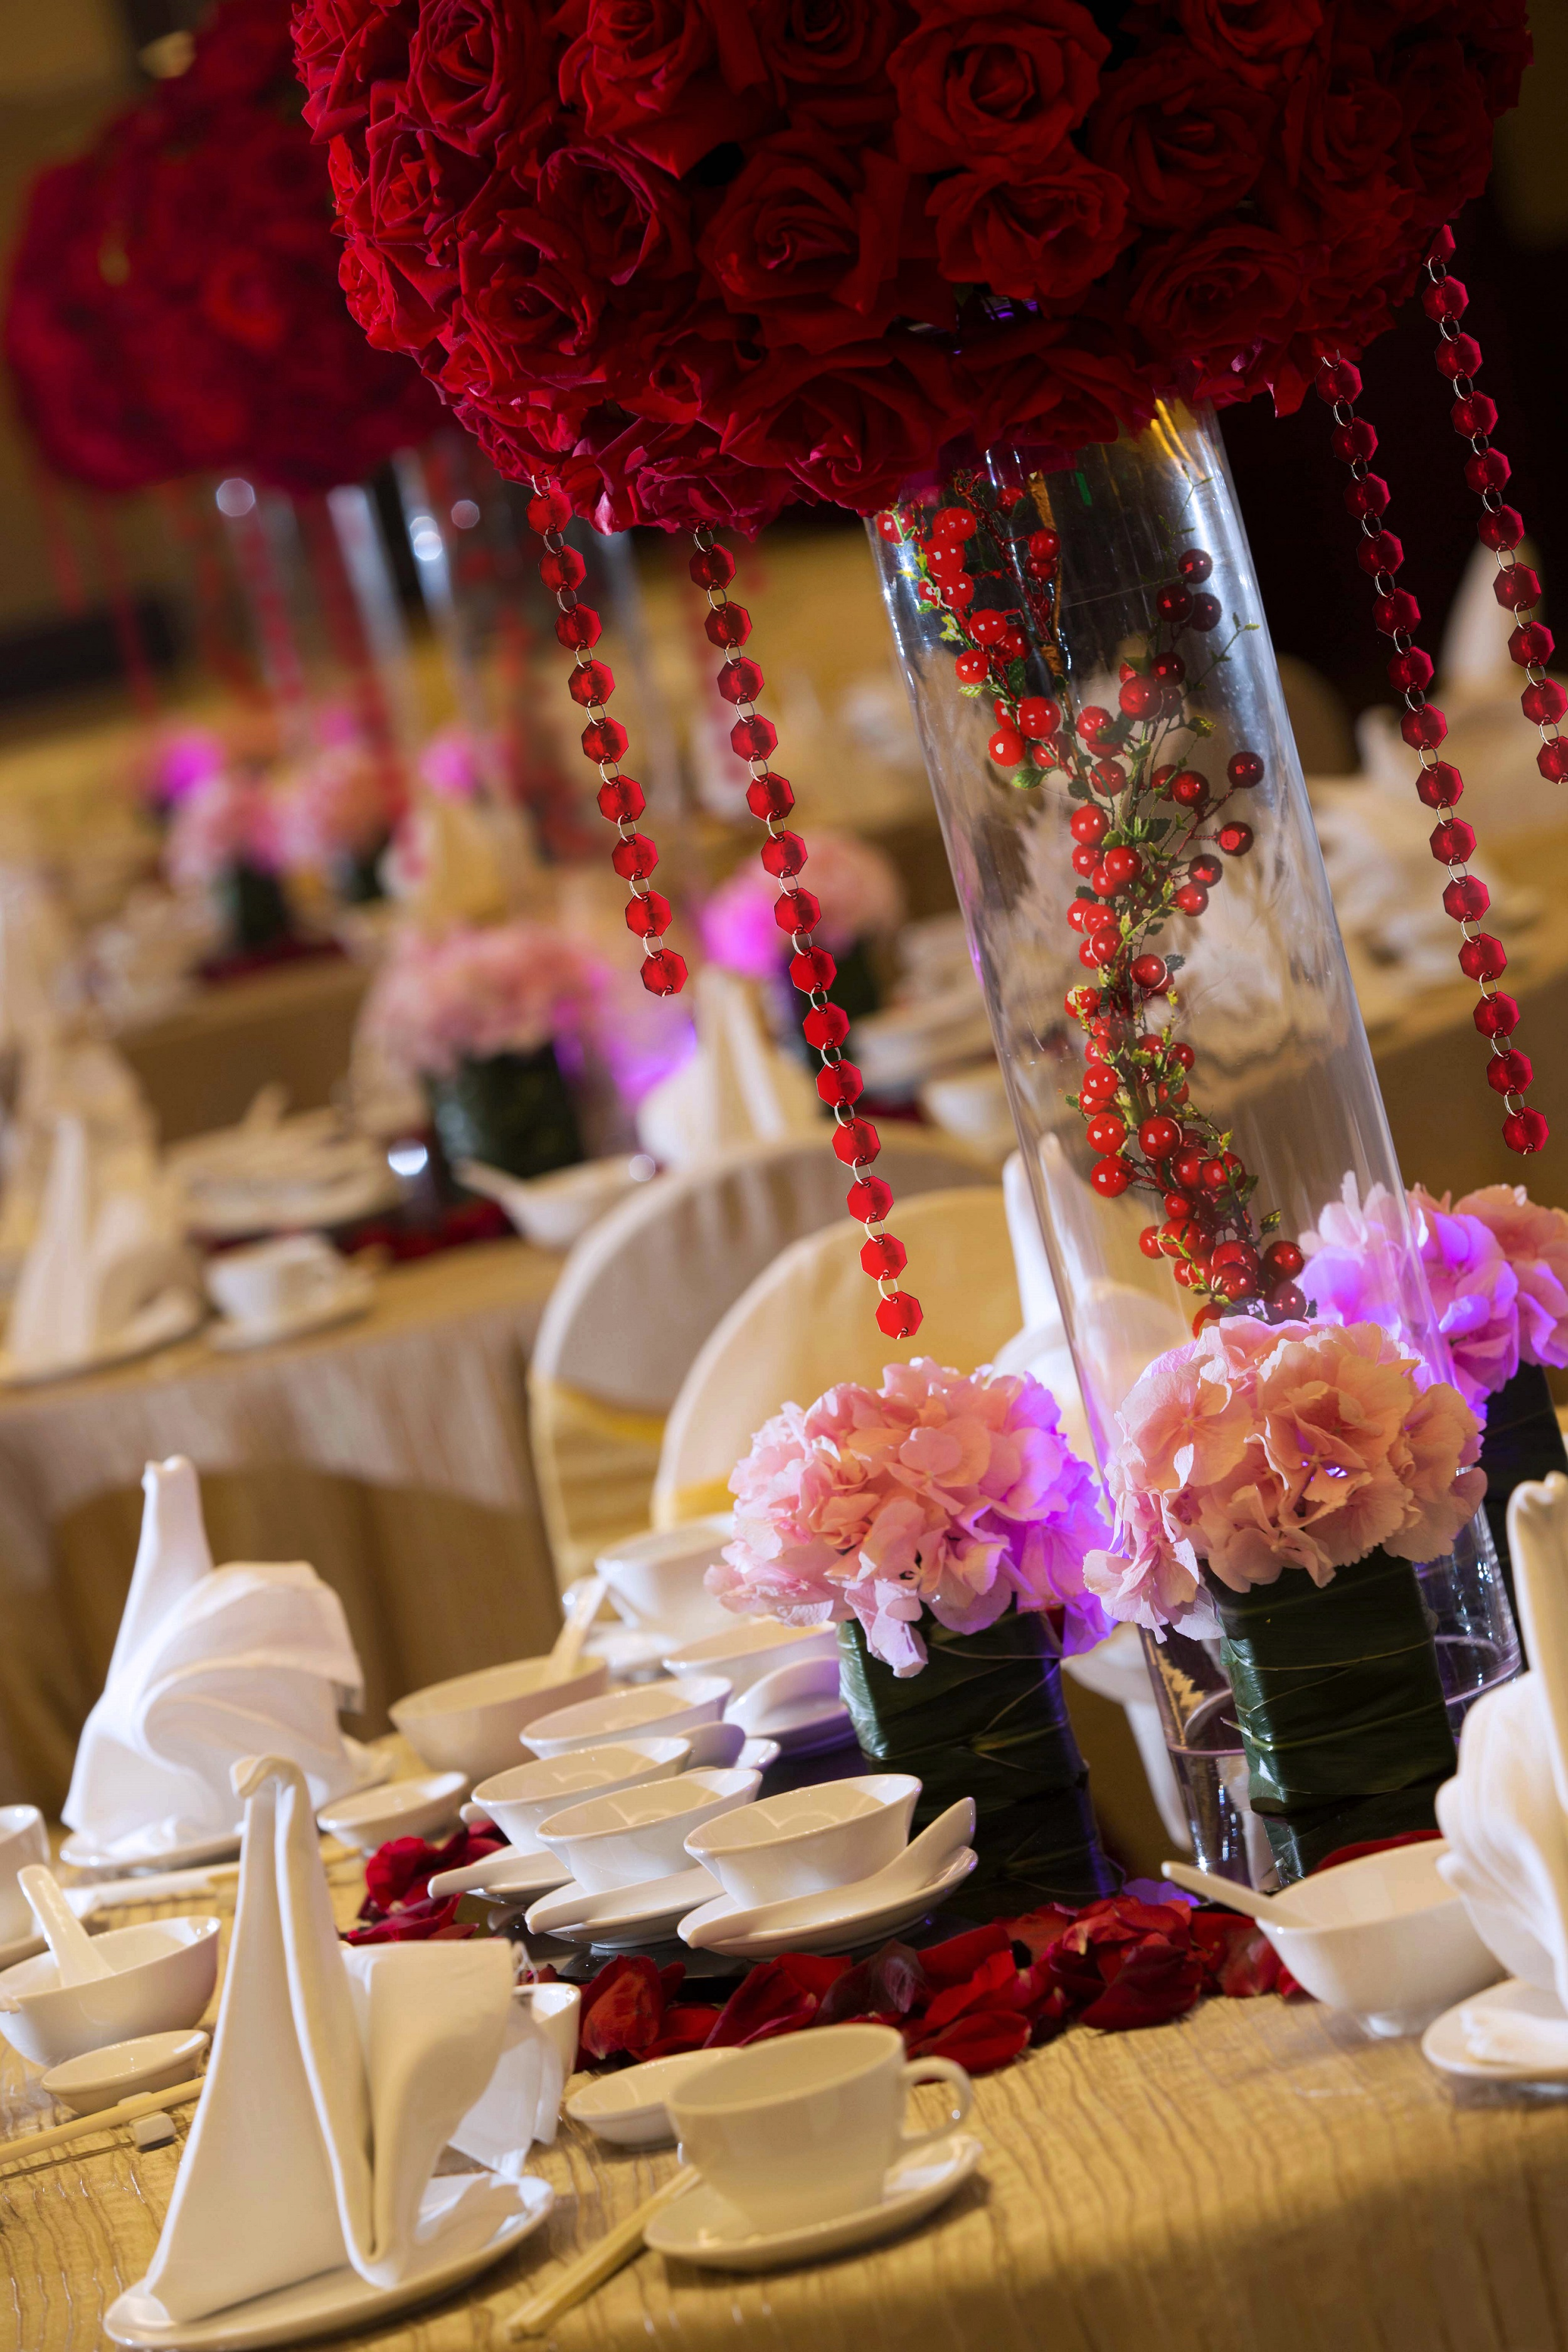 Table Setting with Swan Napkins in Wedding Banquet